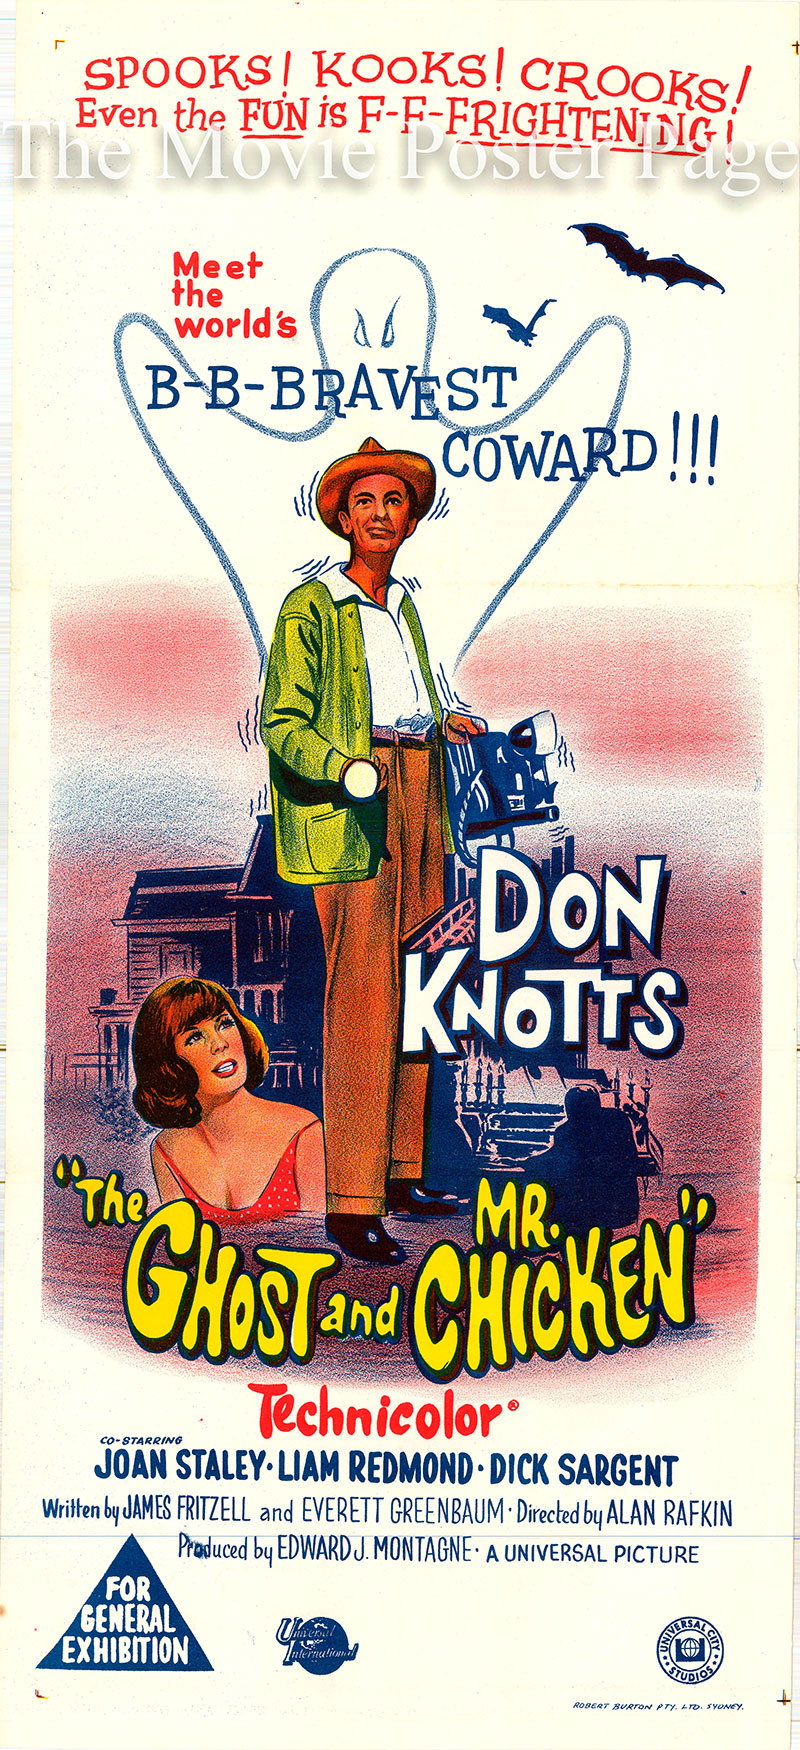 Pictured is an Australian day bill poster for the 1966 Alan Rafkin film <i>The Ghost and Mr. Chicken</i> written by James Fritzell, Everett Grenbaum and Andy Griffith and starring Don Knotts as Luther Heggs.